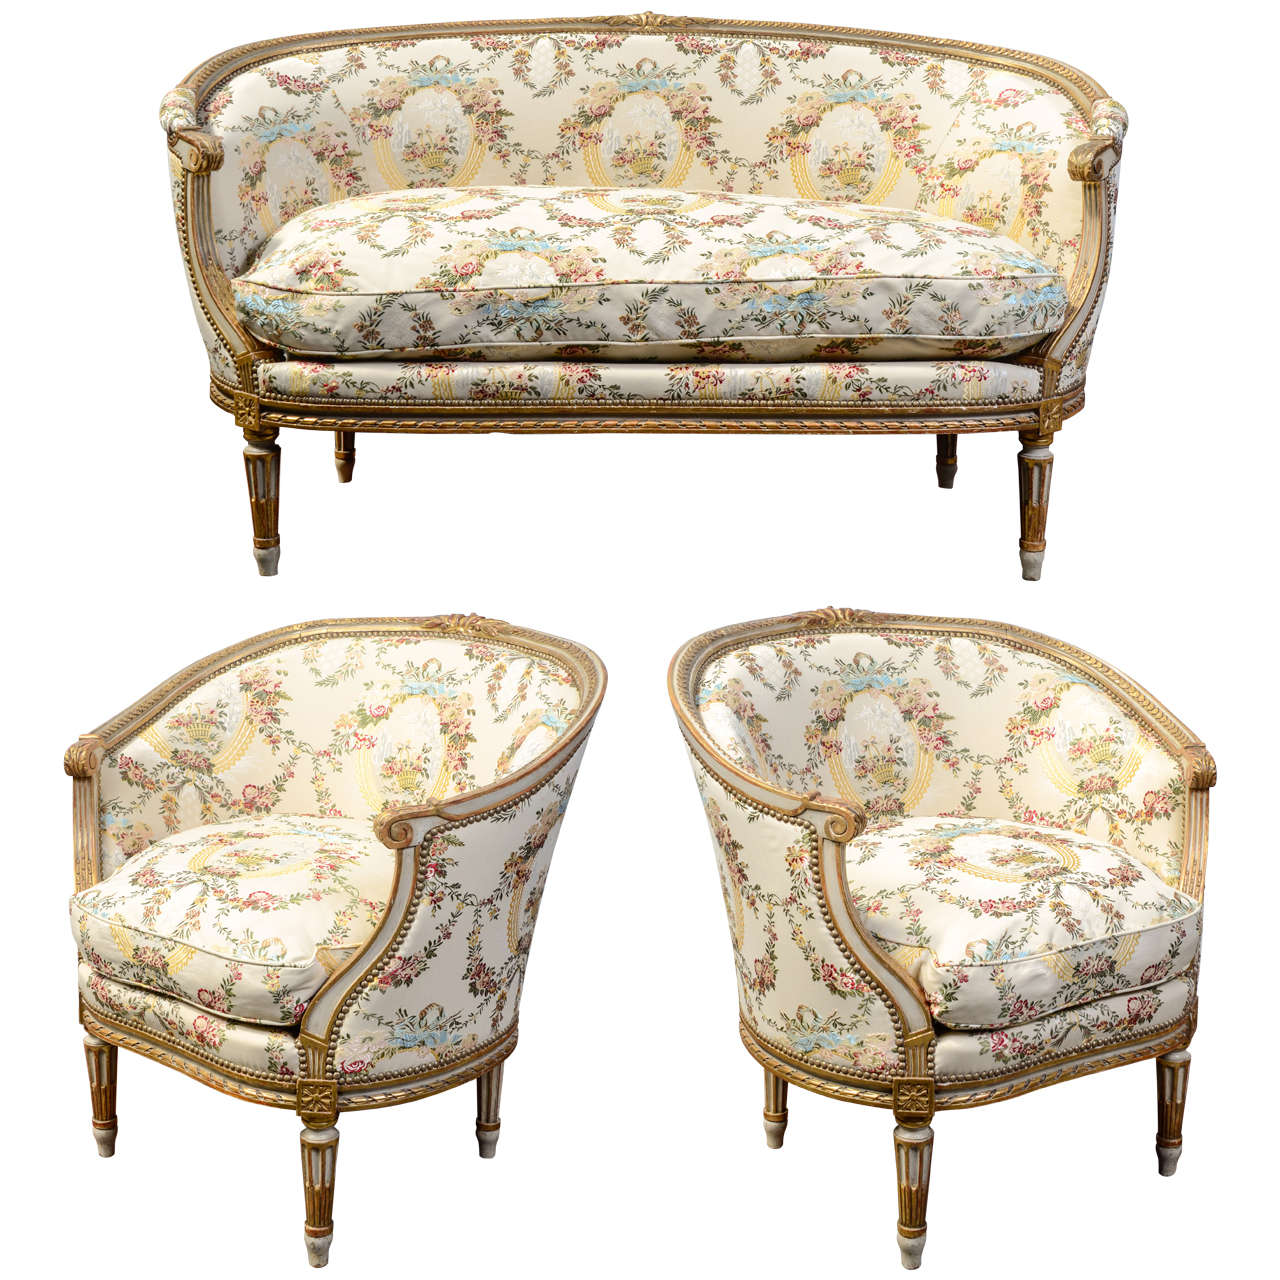 Louis xvi style salon 3 pieces for sale at 1stdibs - Salon louis xvi ...